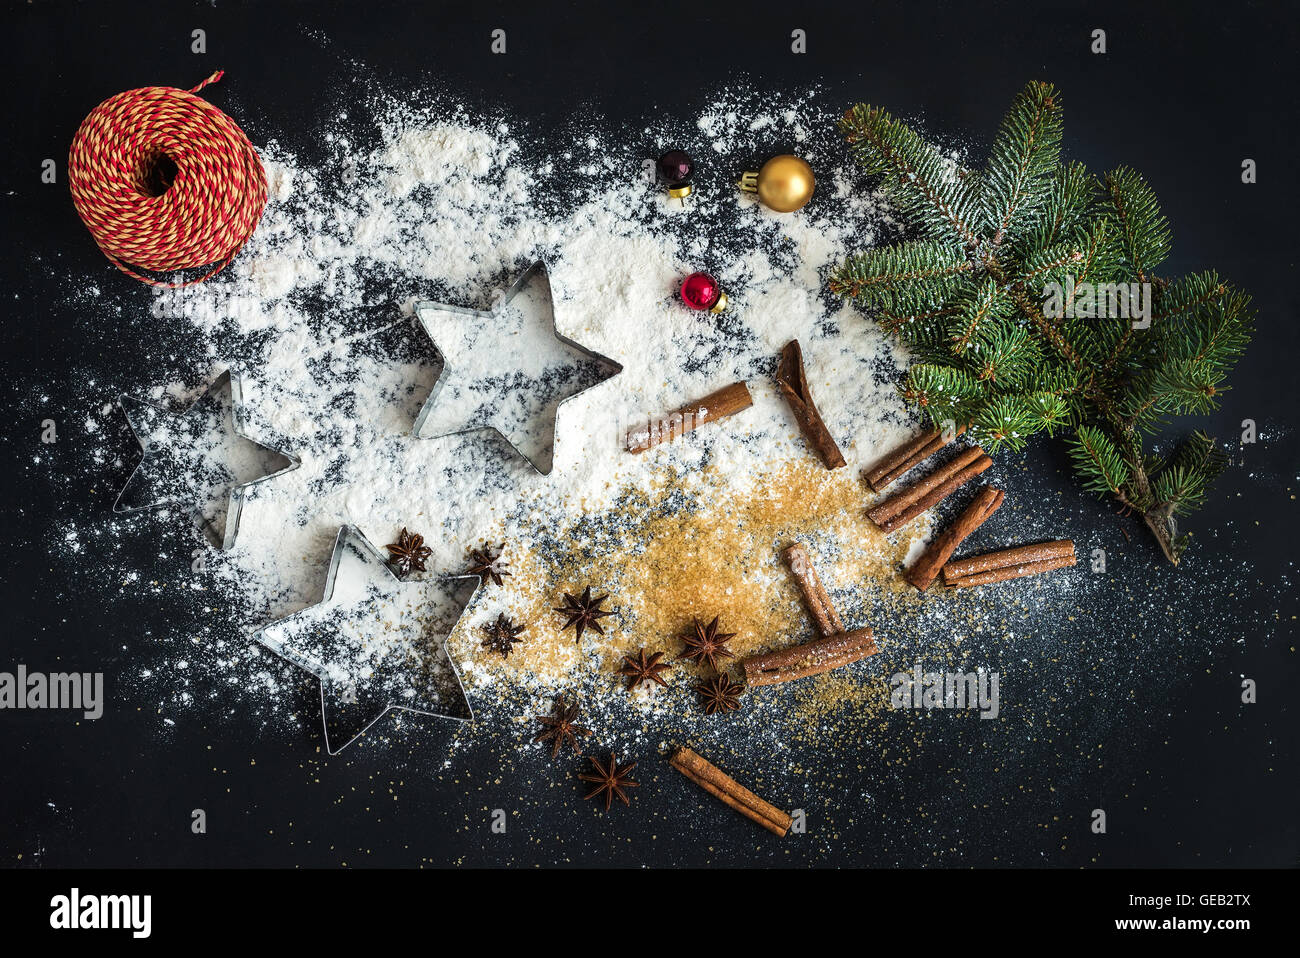 Cooking traditional Christmas holiday gingerbread cookies with cinnamon on black background - Stock Image